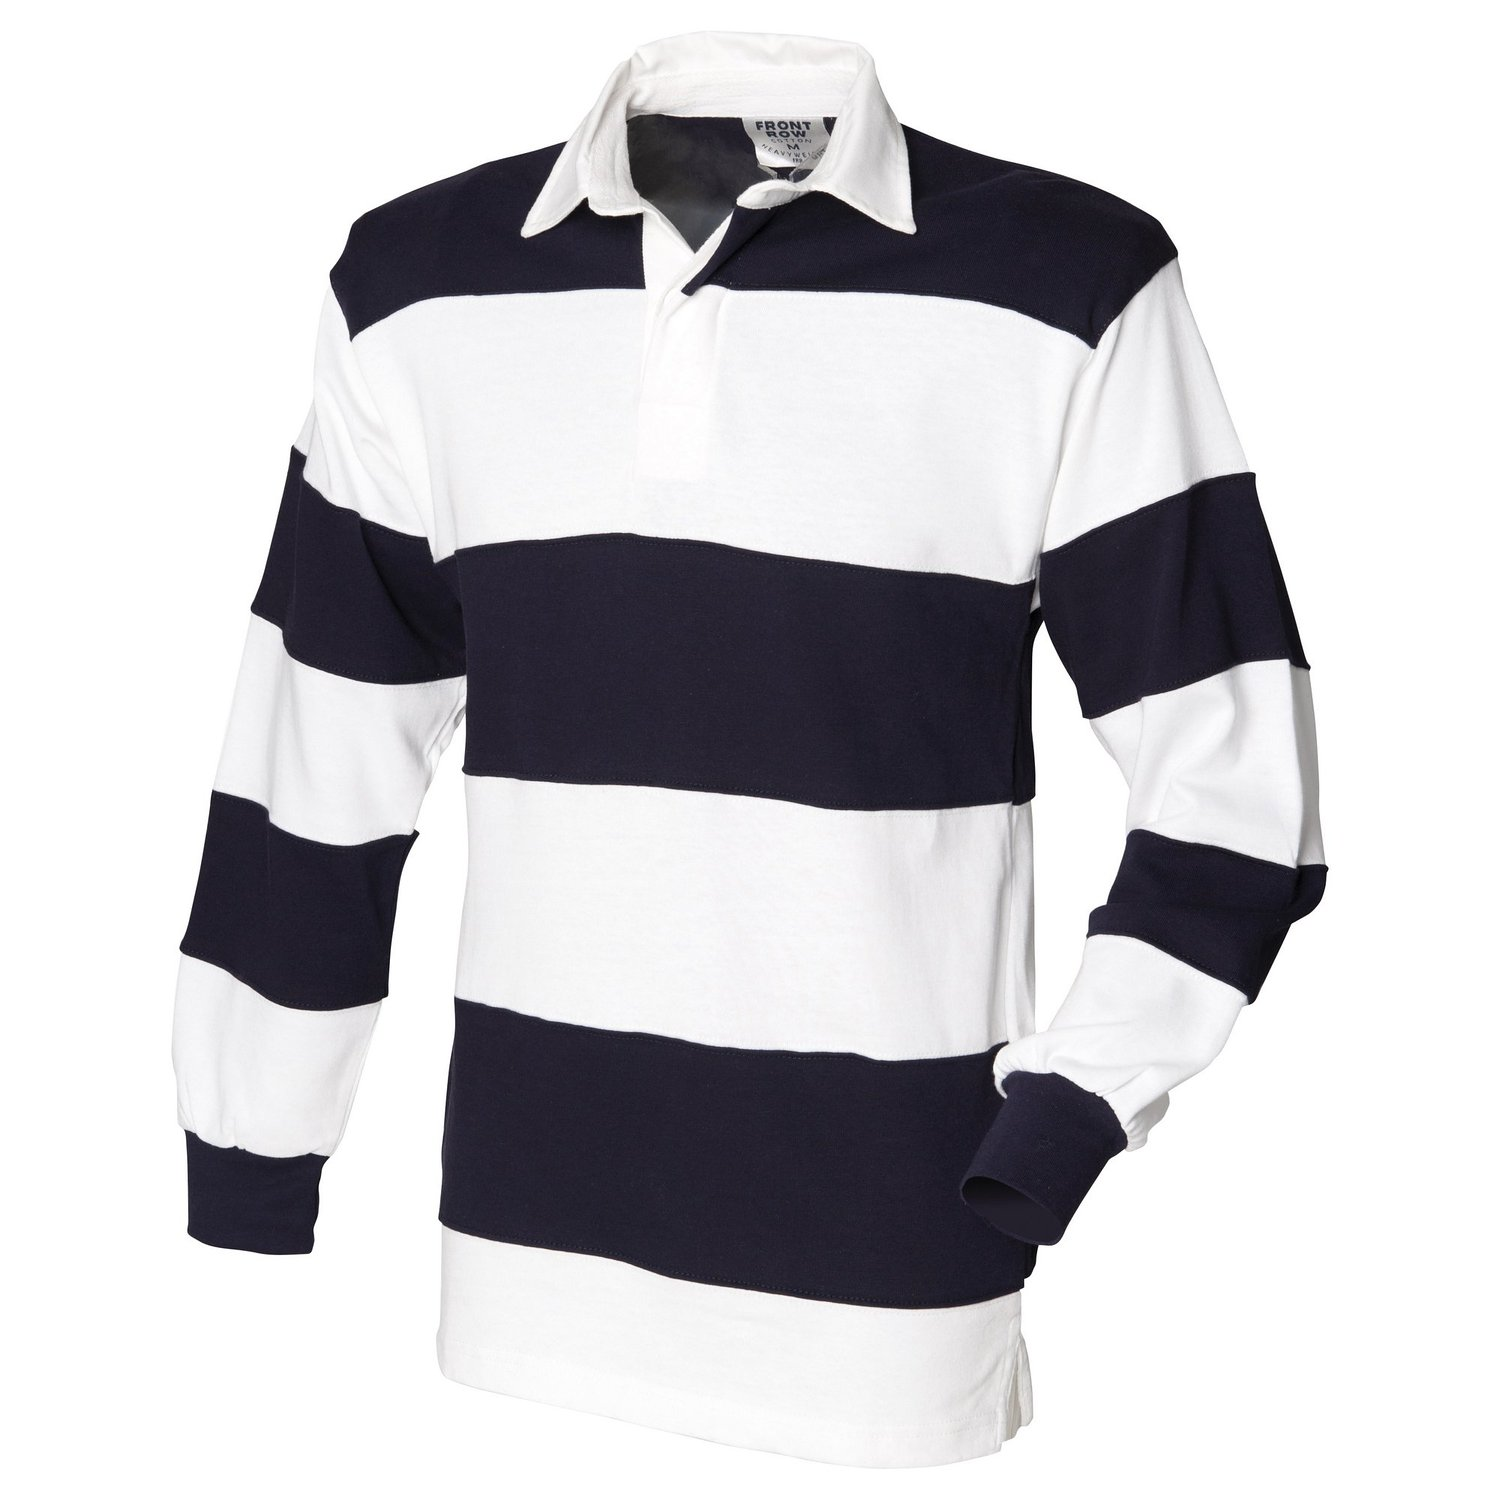 GIRLS - PREMIUM - Unisex Polo Rugby L/S